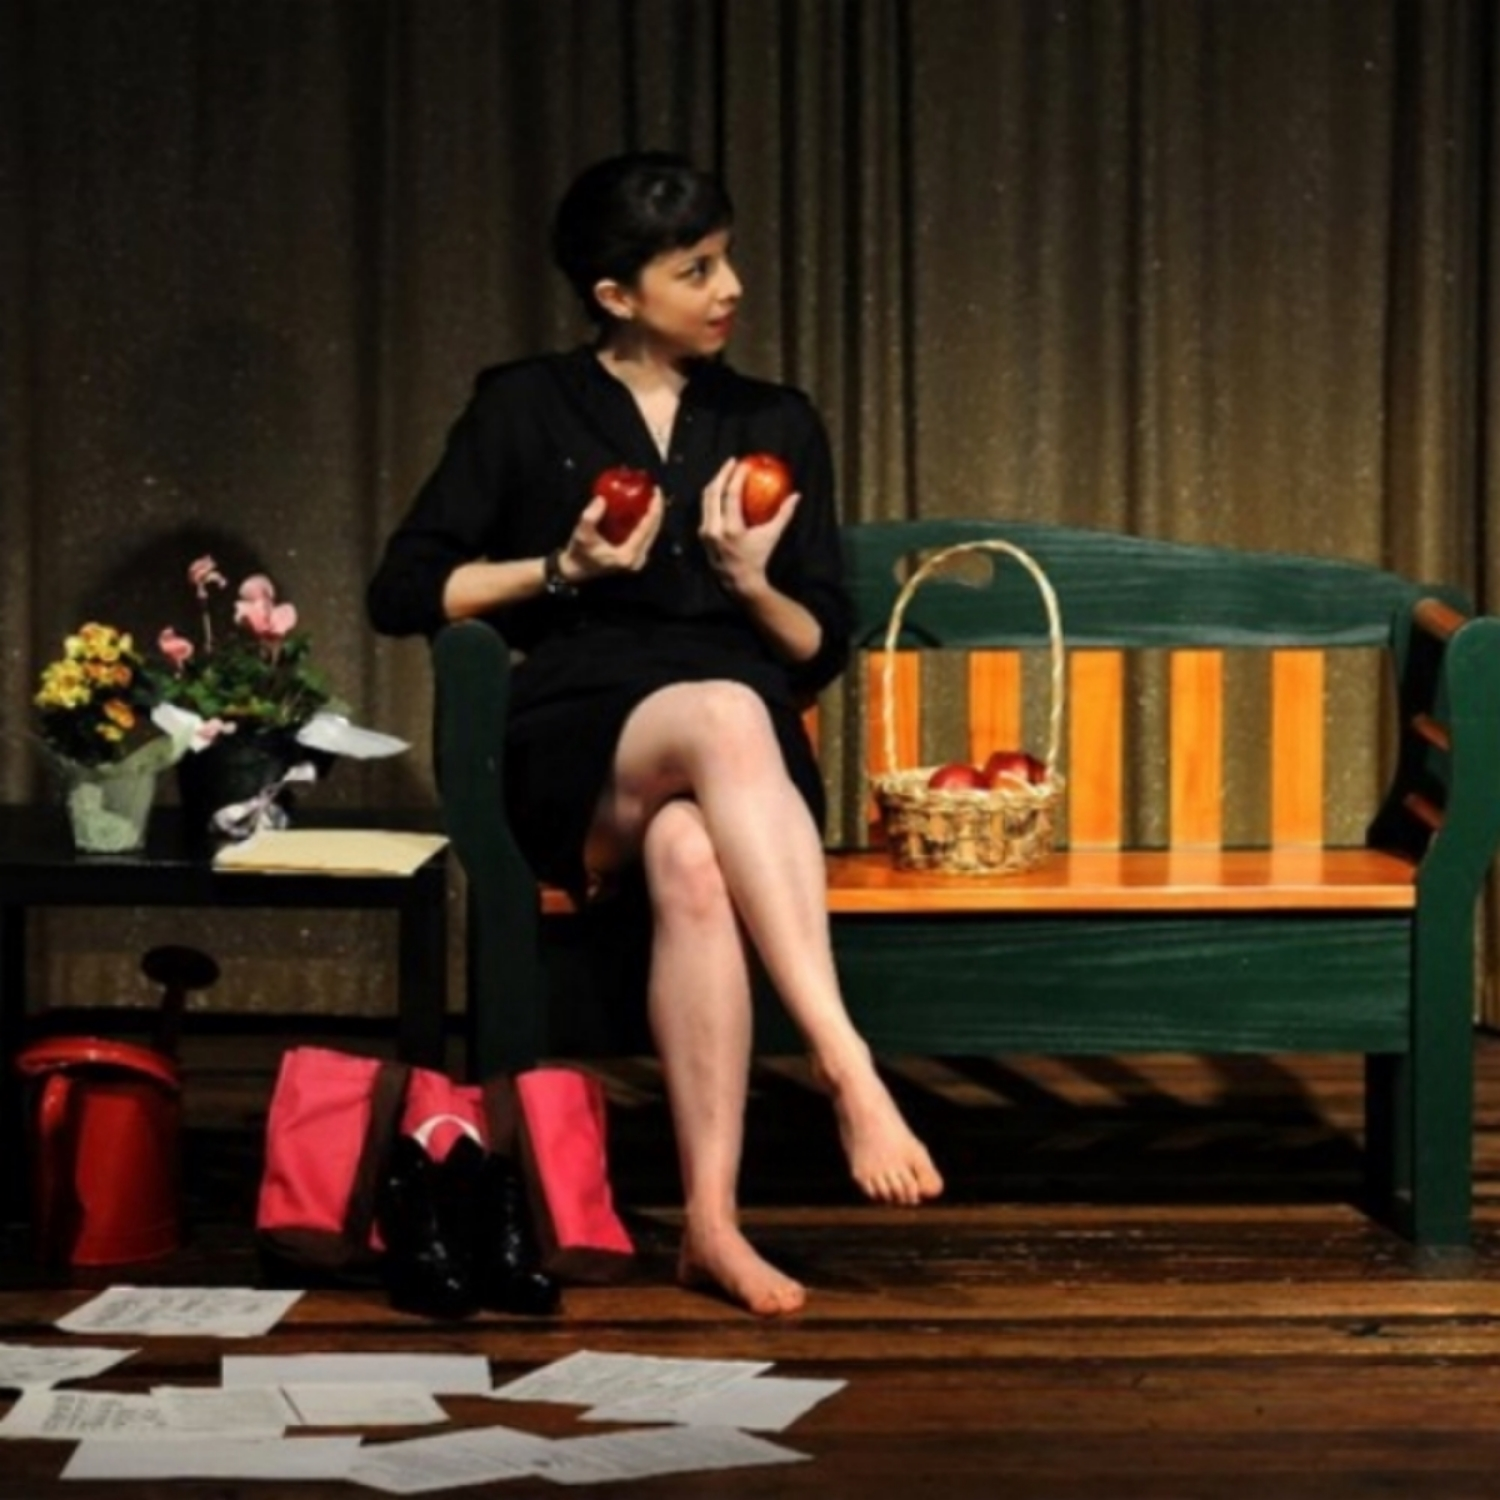 Sarah Lutz in  Eden  at Crack the Glass Theatre Company, directed by Polly Rose Edelstein. Photo by Jack E. Kapp.